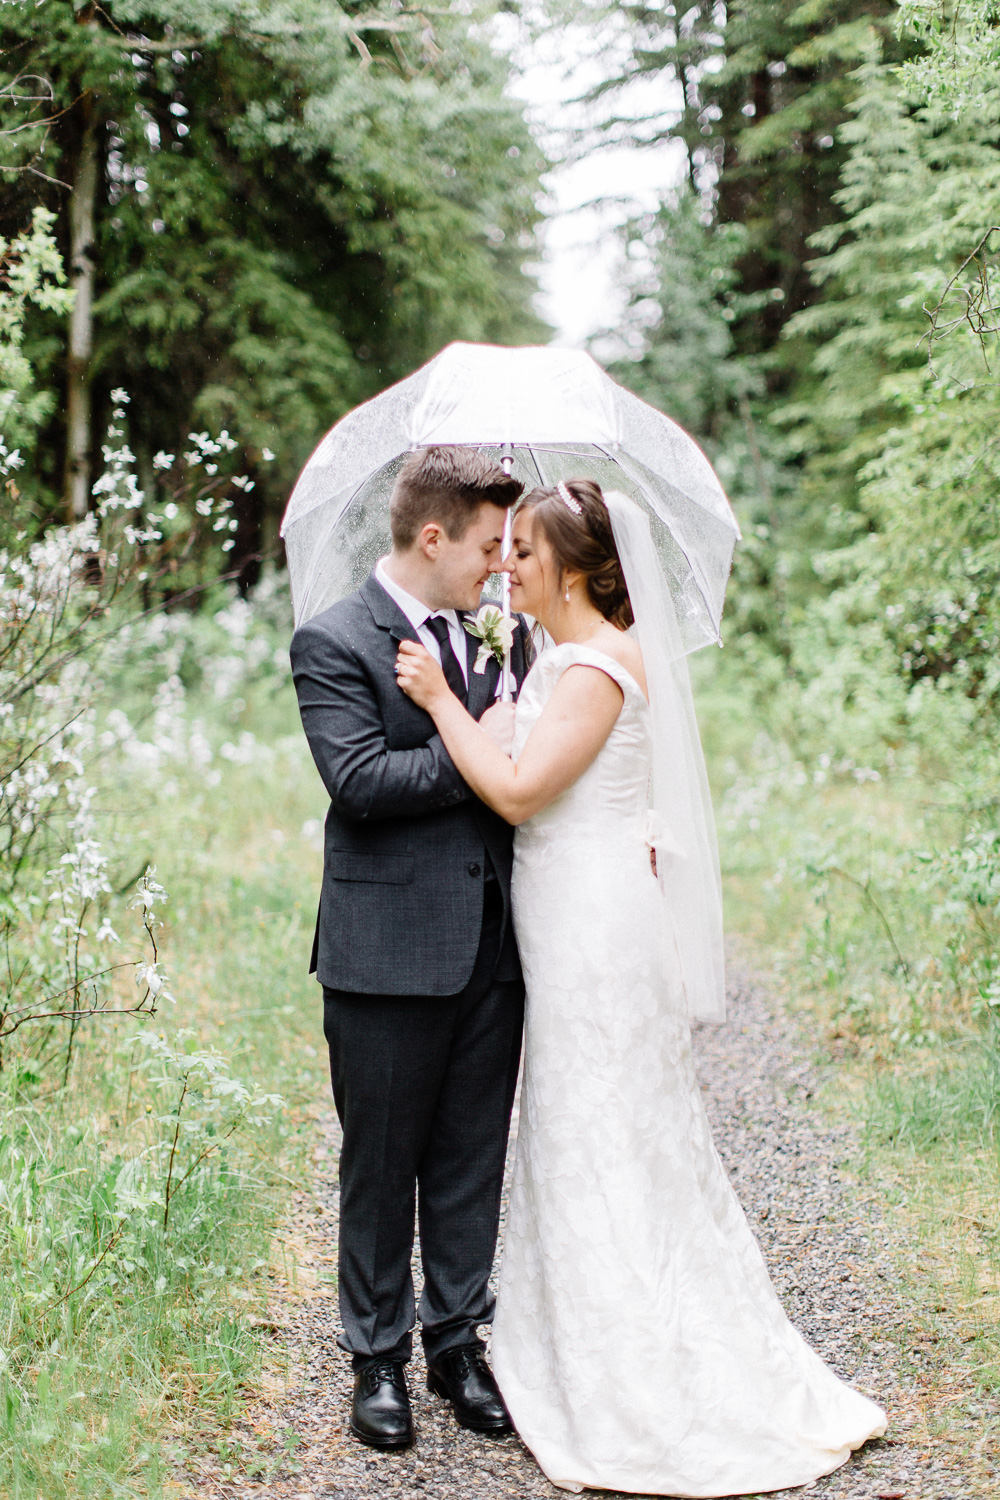 muriettas wedding in canmore - canmore wedding photographers